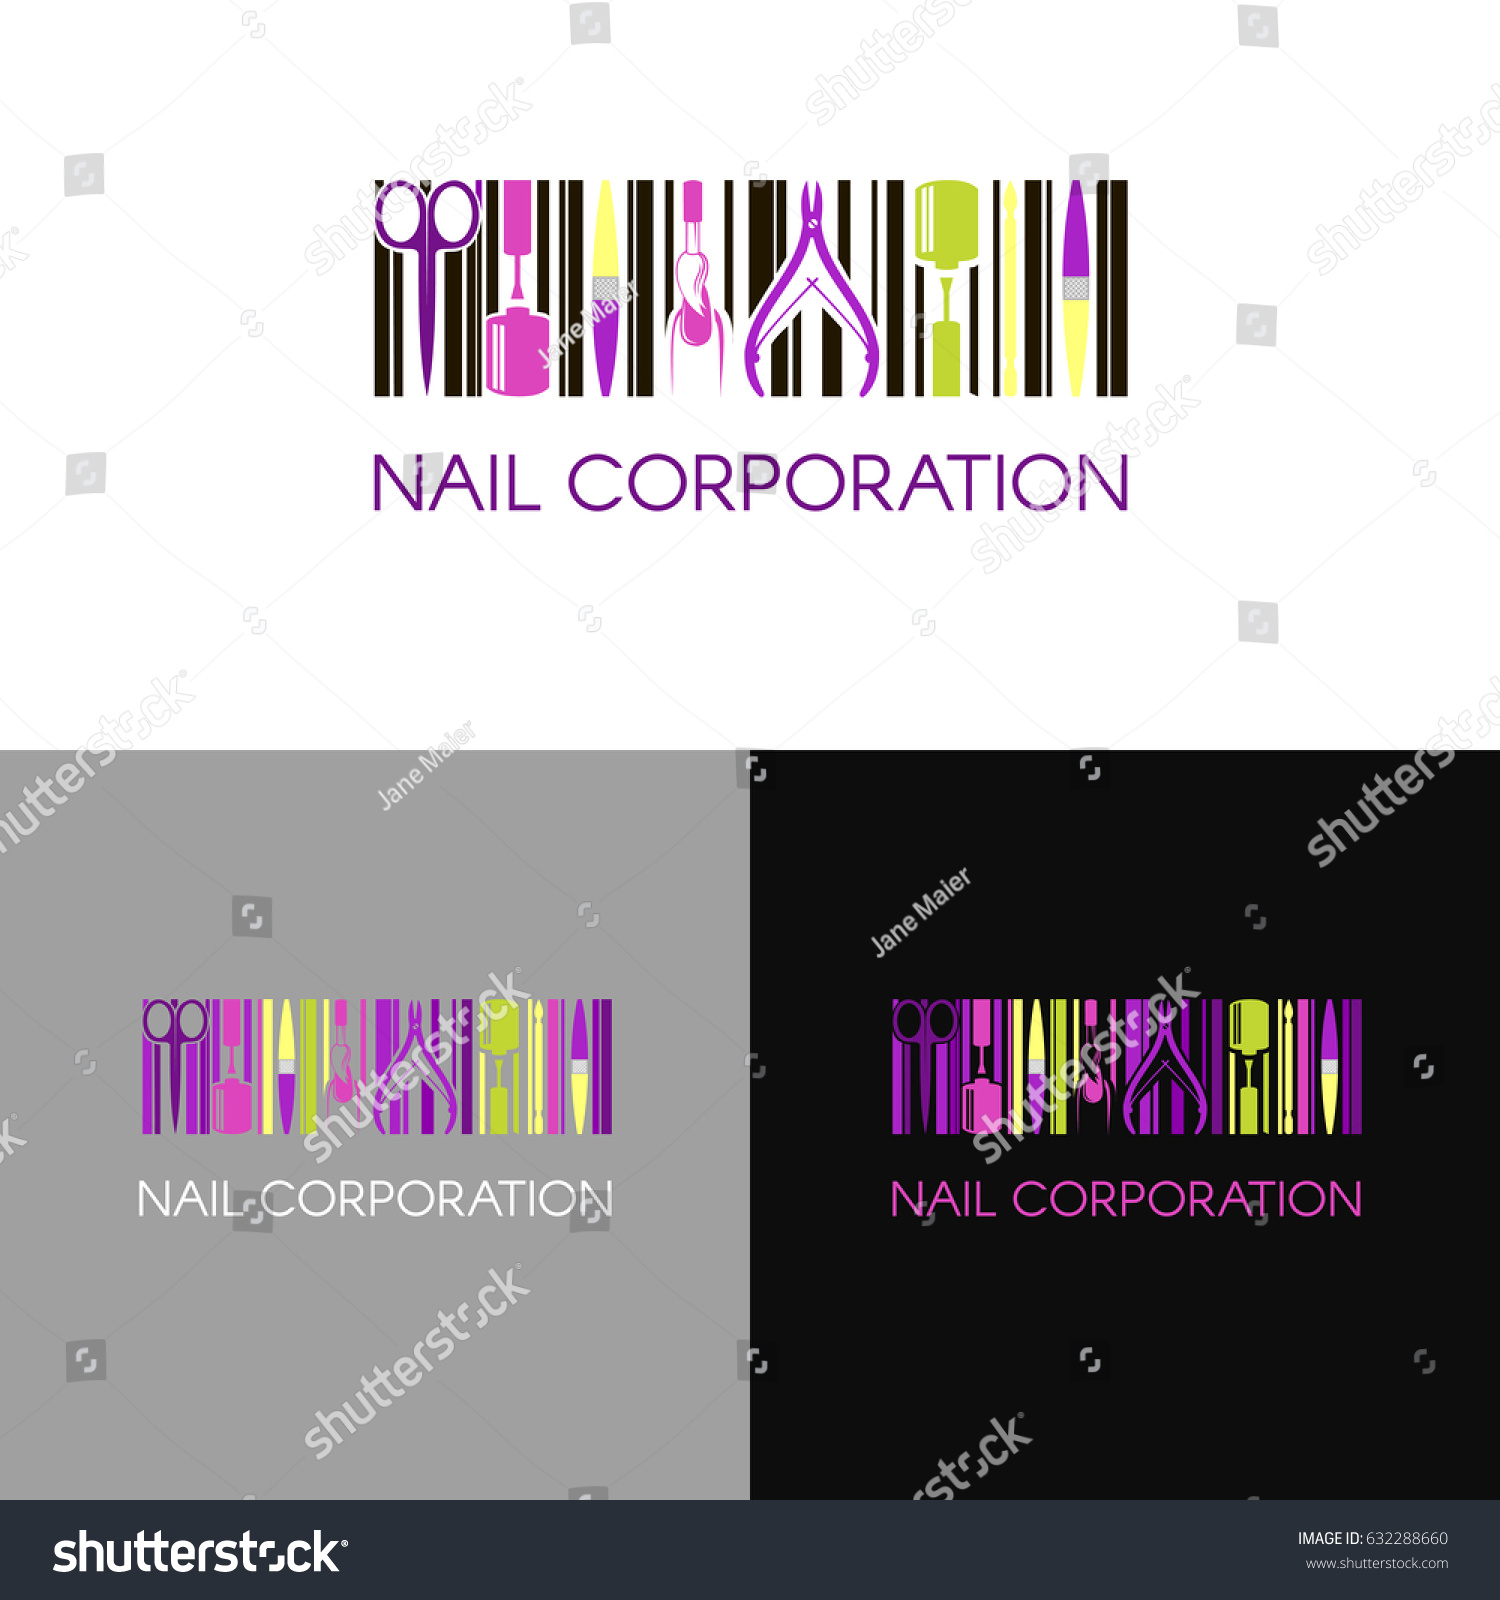 Vector logo nail design company business stock vector 632288660 vector logo for nail design company with business name card and corporate pattern in geometric style magicingreecefo Choice Image